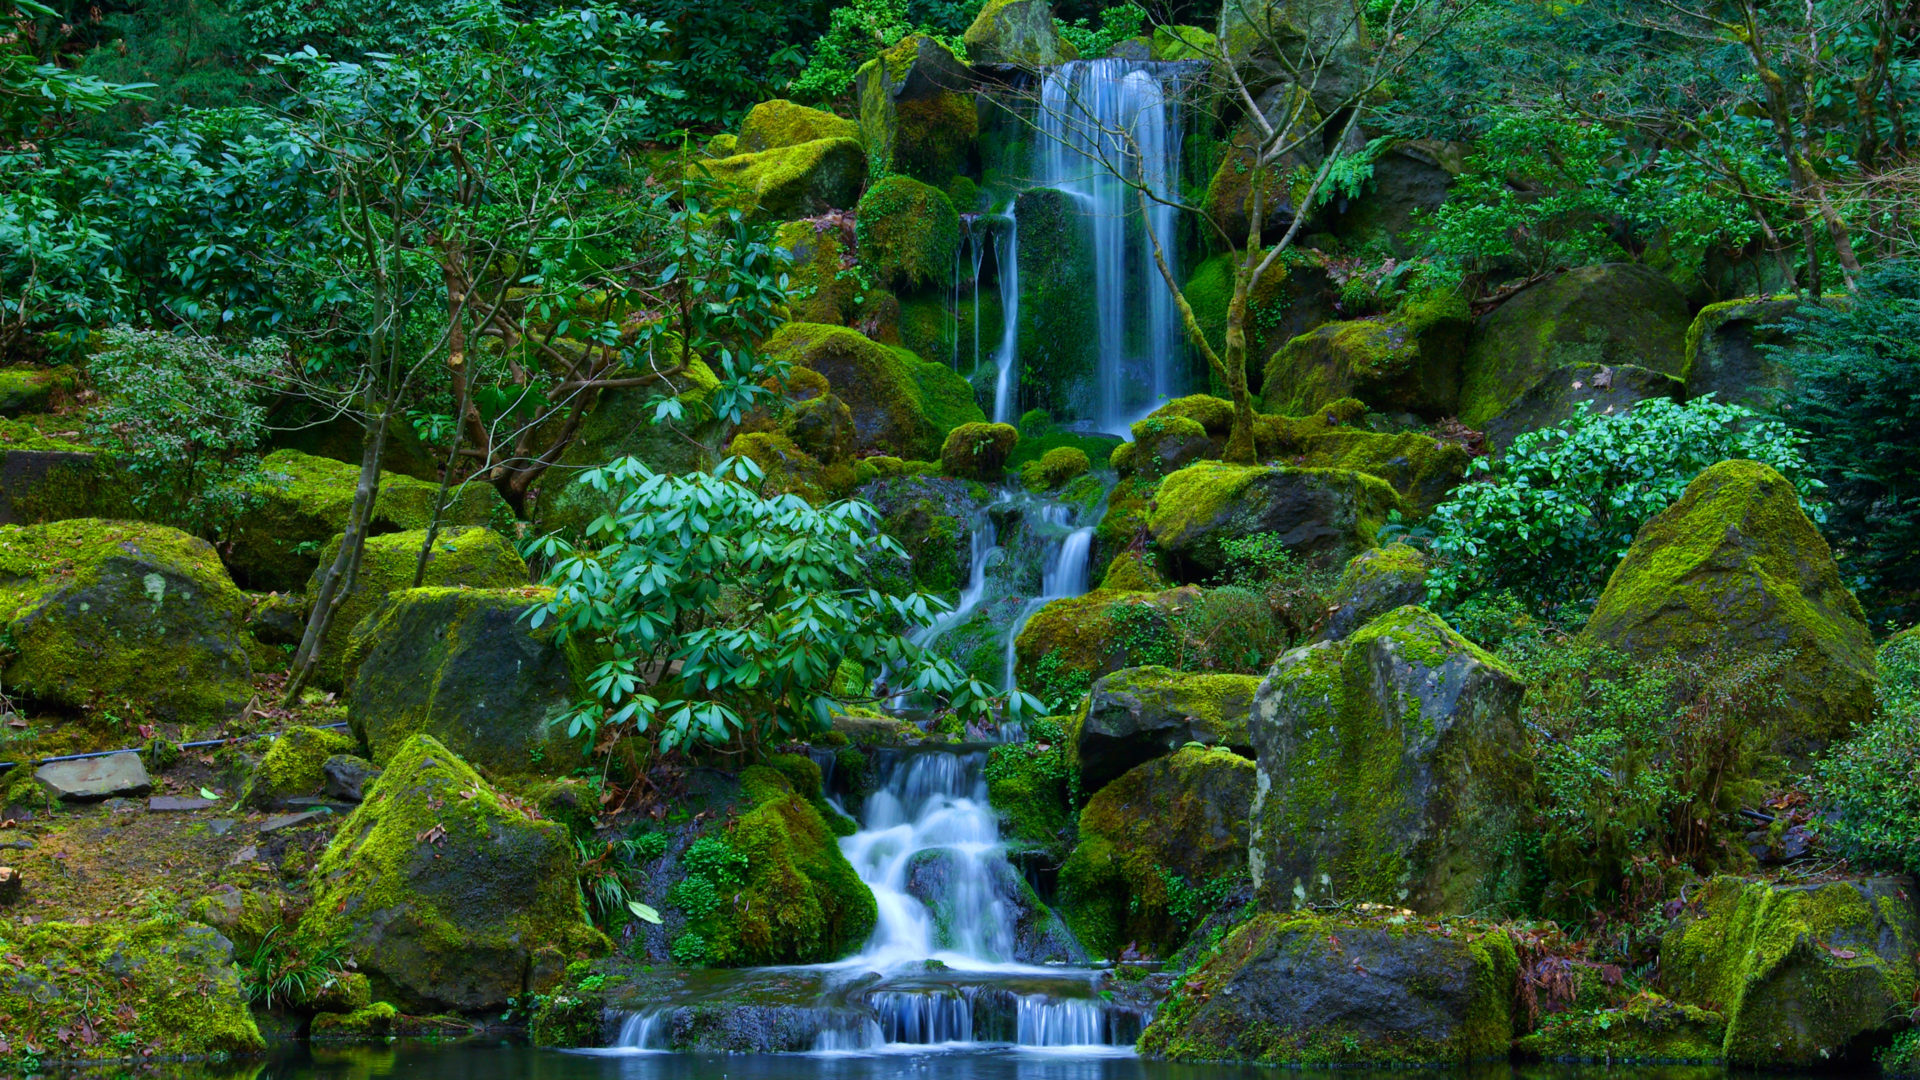 Waterfalls Desktop Wallpaper Forest Falls Portland Japanese Garden Located In Washington Park And